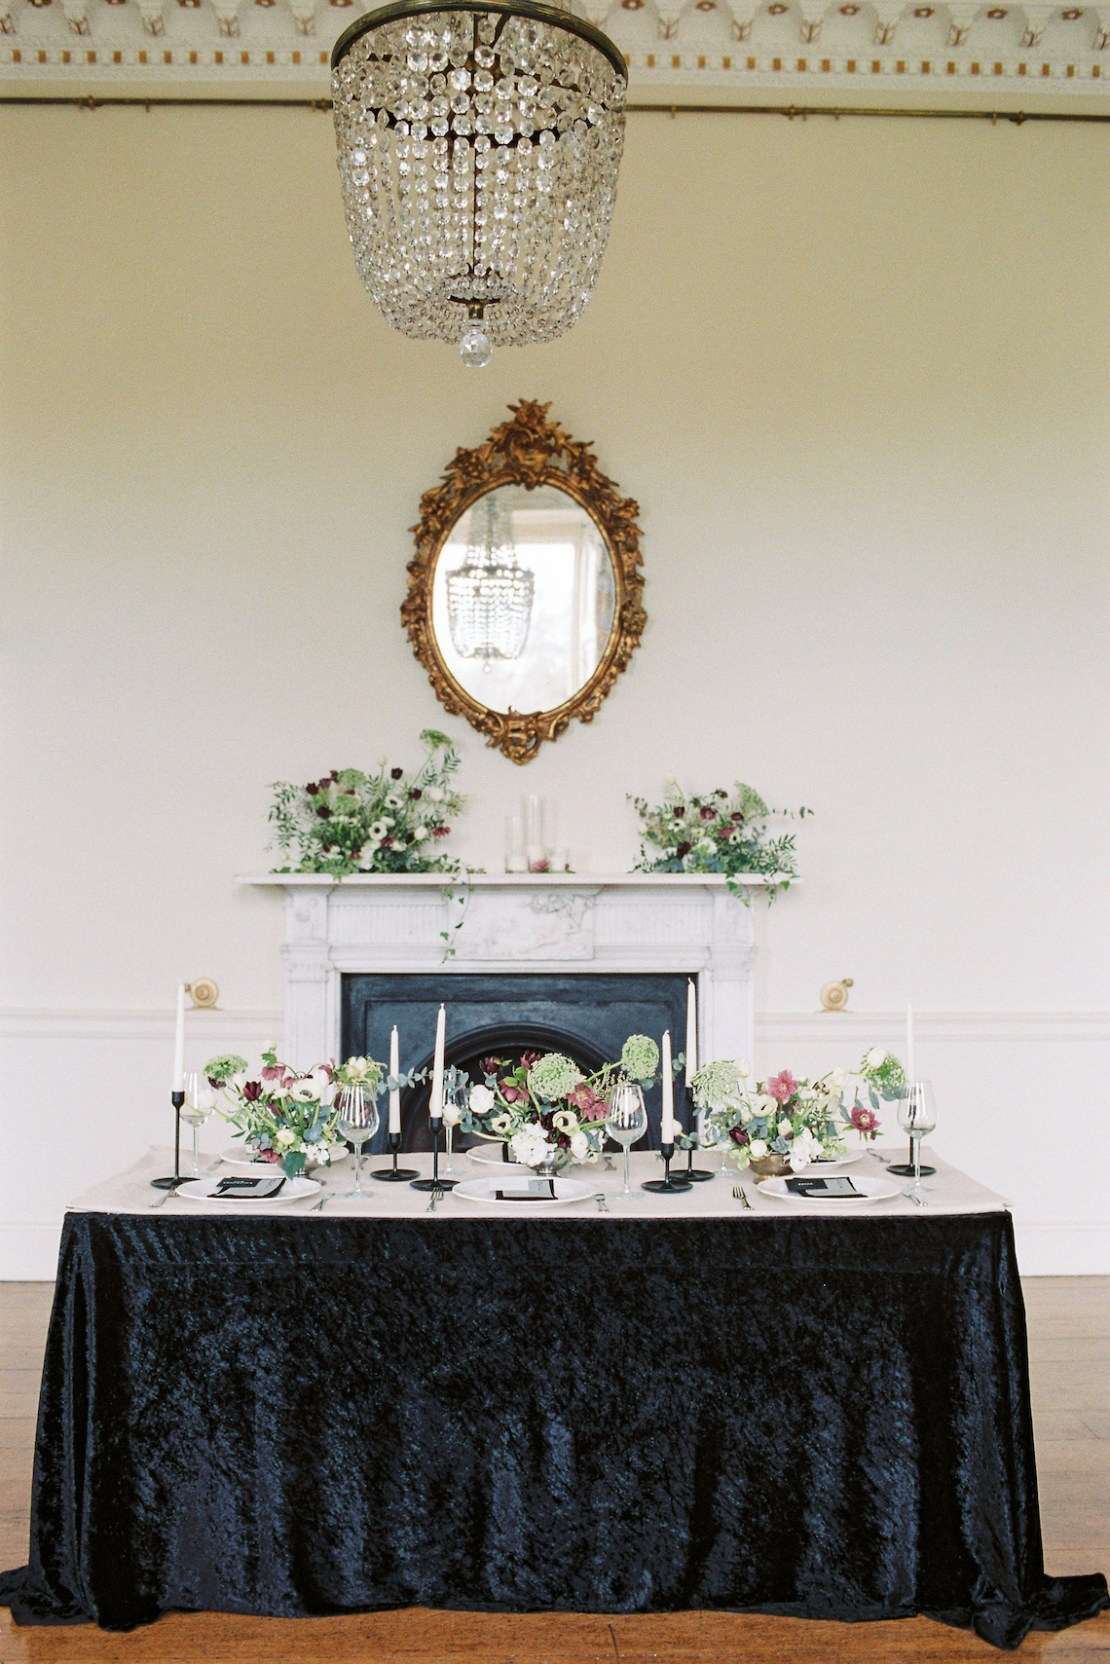 Luxurious-Coco-Chanel-Inspired-Wedding-Ideas-Bowtie-Belle-Photography-9-min.jpg